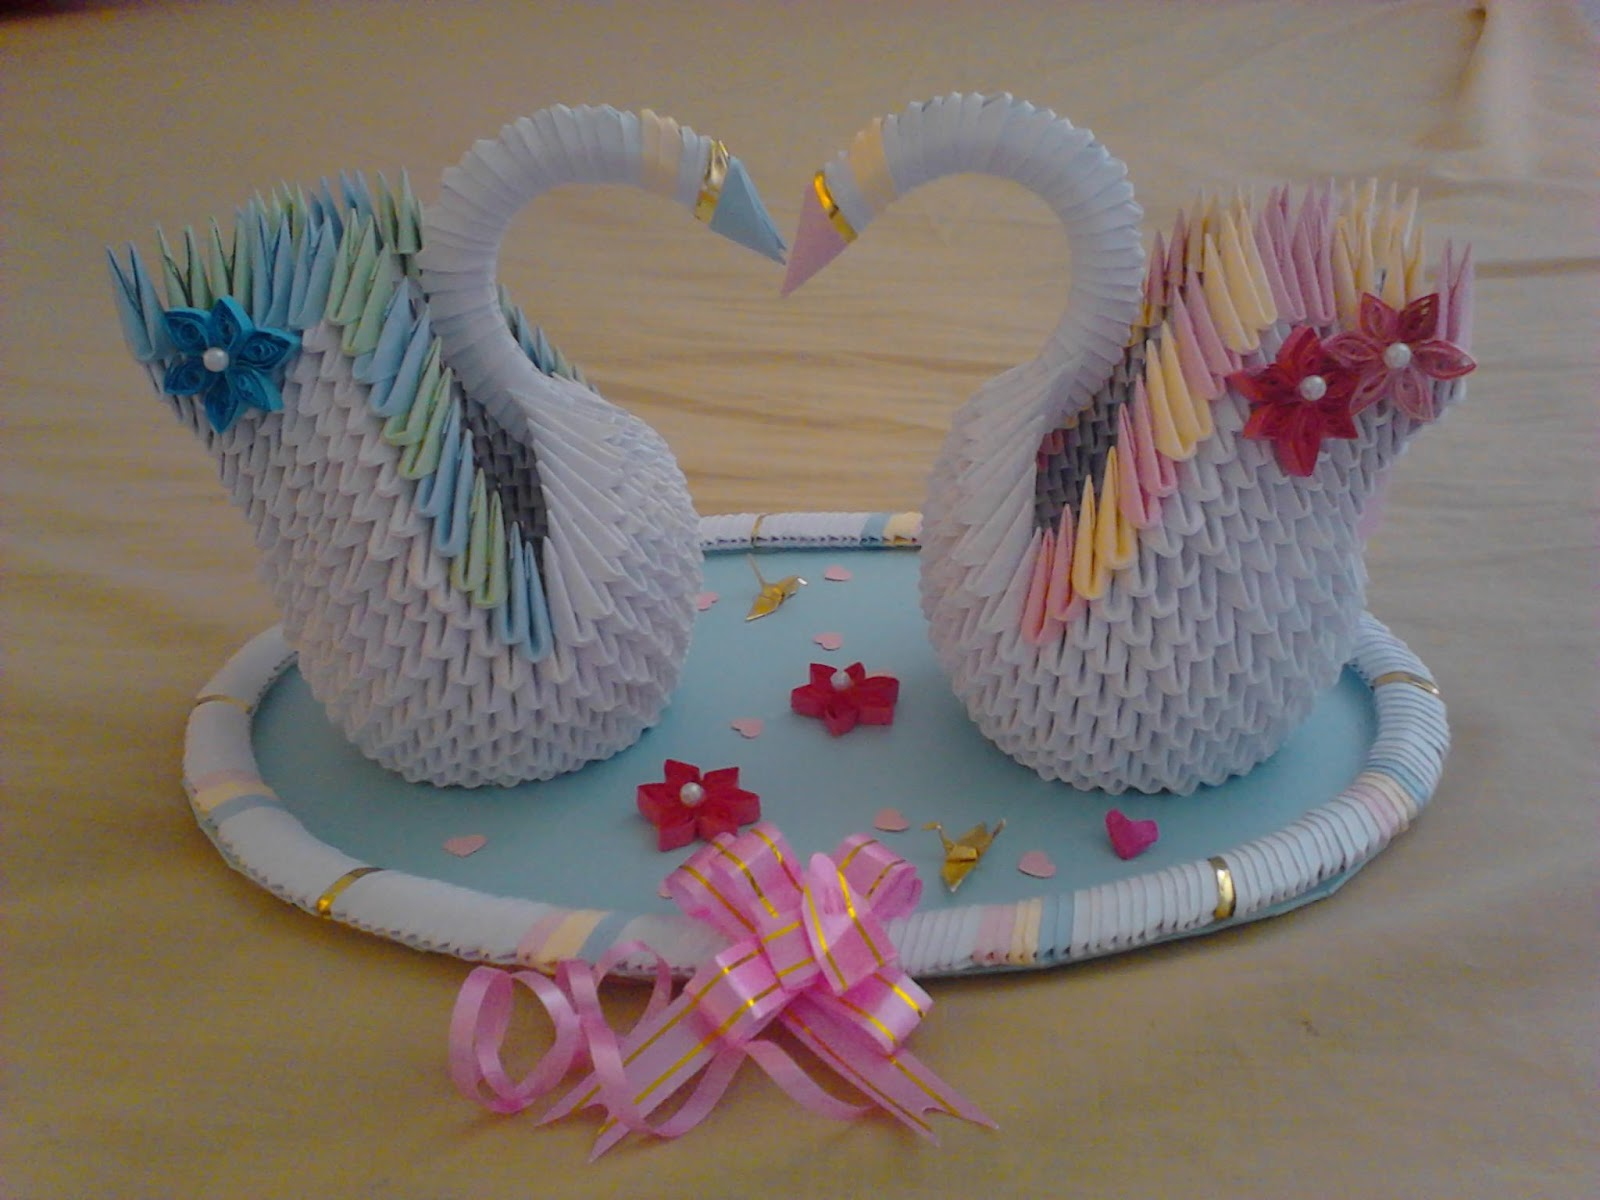 Jewellia handicrafts: 3D origami wedding swans - photo#15